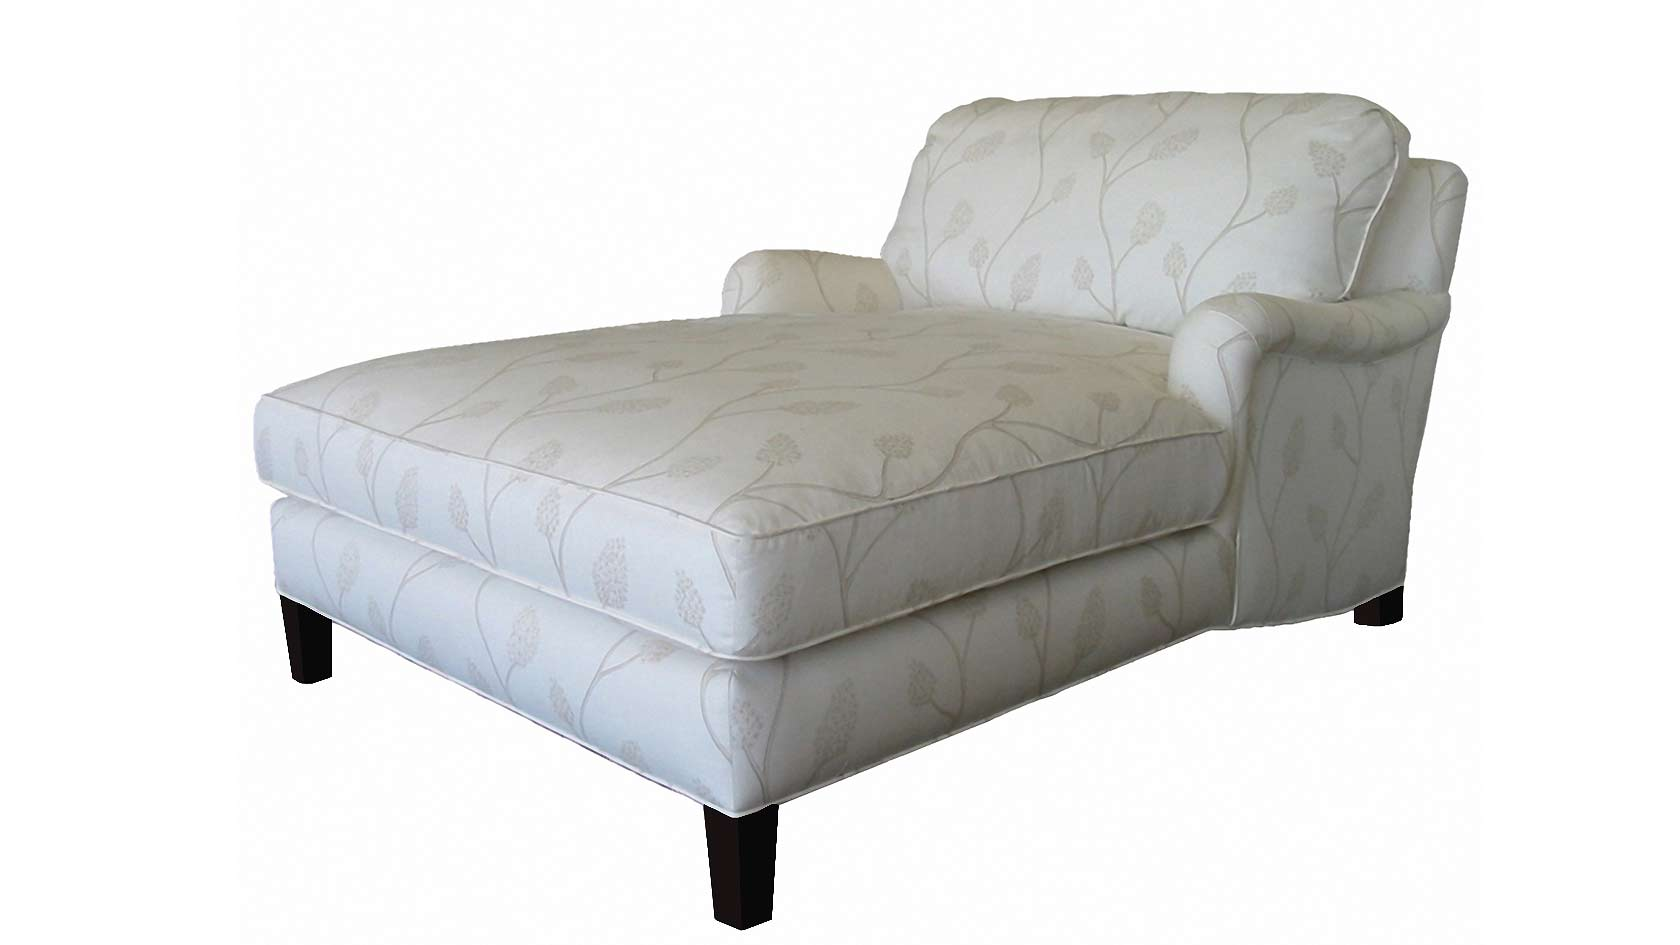 chelsea double chaise lounge ...  sc 1 st  Plush Home : chaise lounge double - Sectionals, Sofas & Couches